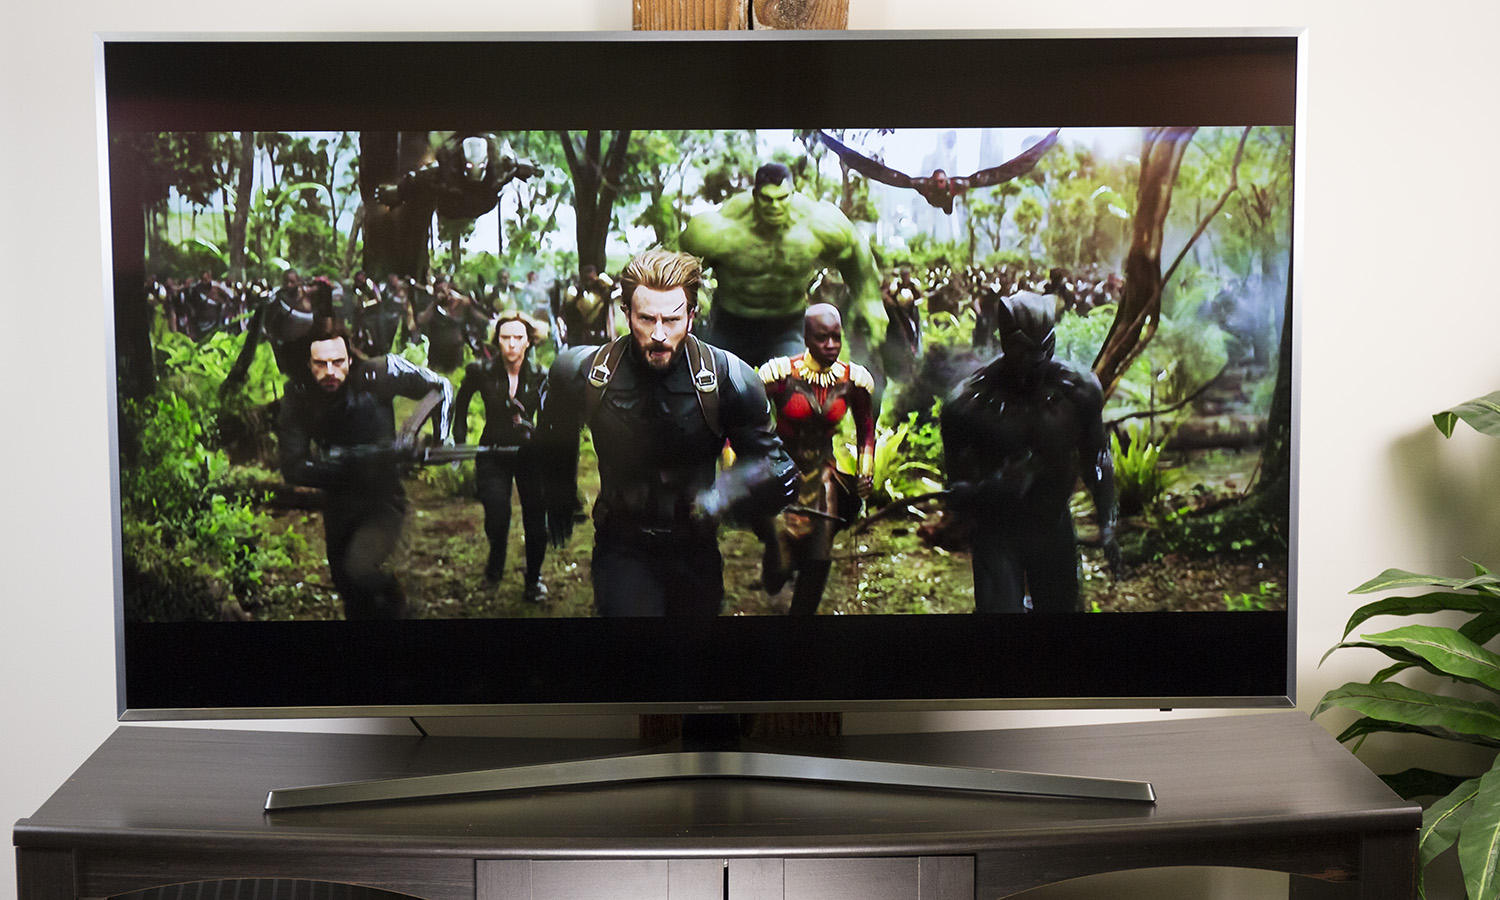 Samsung 65-Inch MU7000 Review: A Stylish and Capable Smart TV